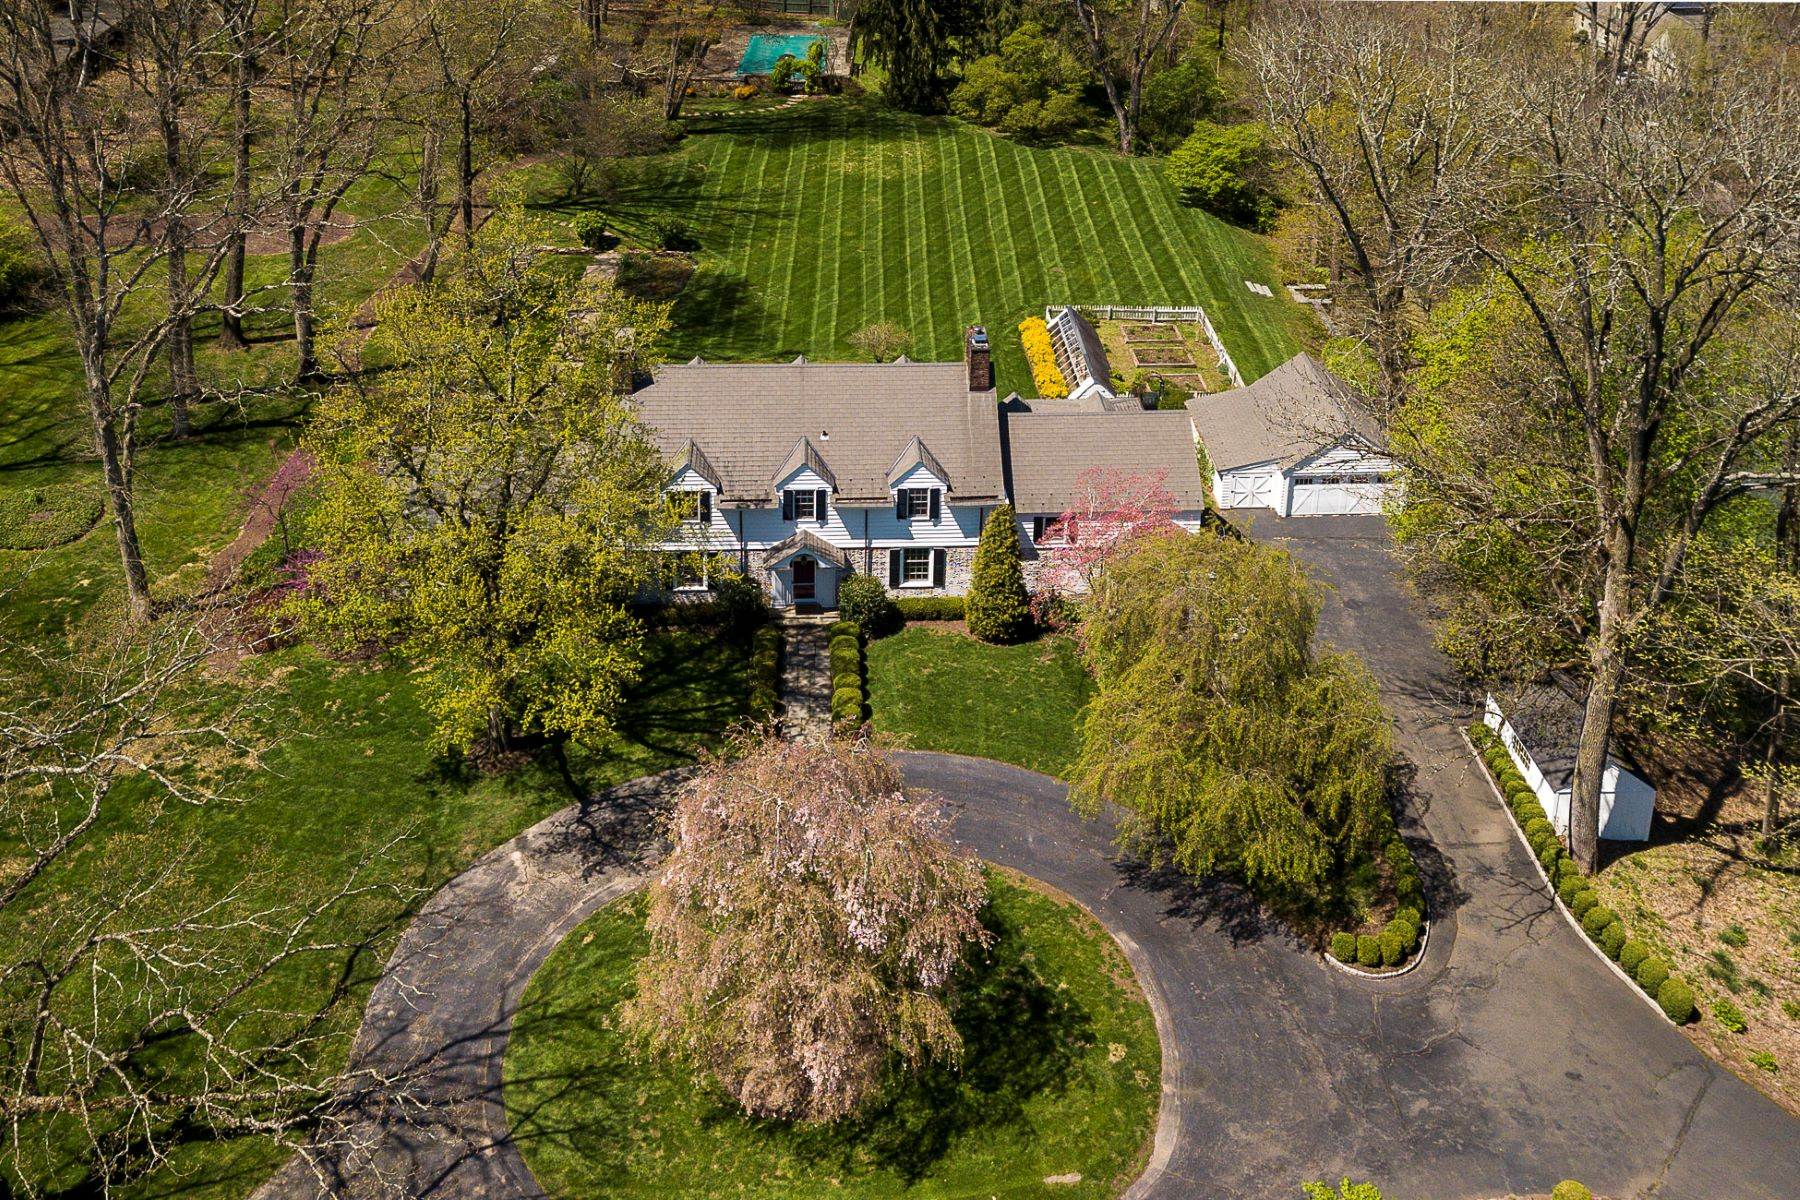 Single Family Homes for Sale at From the Train to Tranquility in Under 6 Miles 75 North Road, Princeton, New Jersey 08540 United States